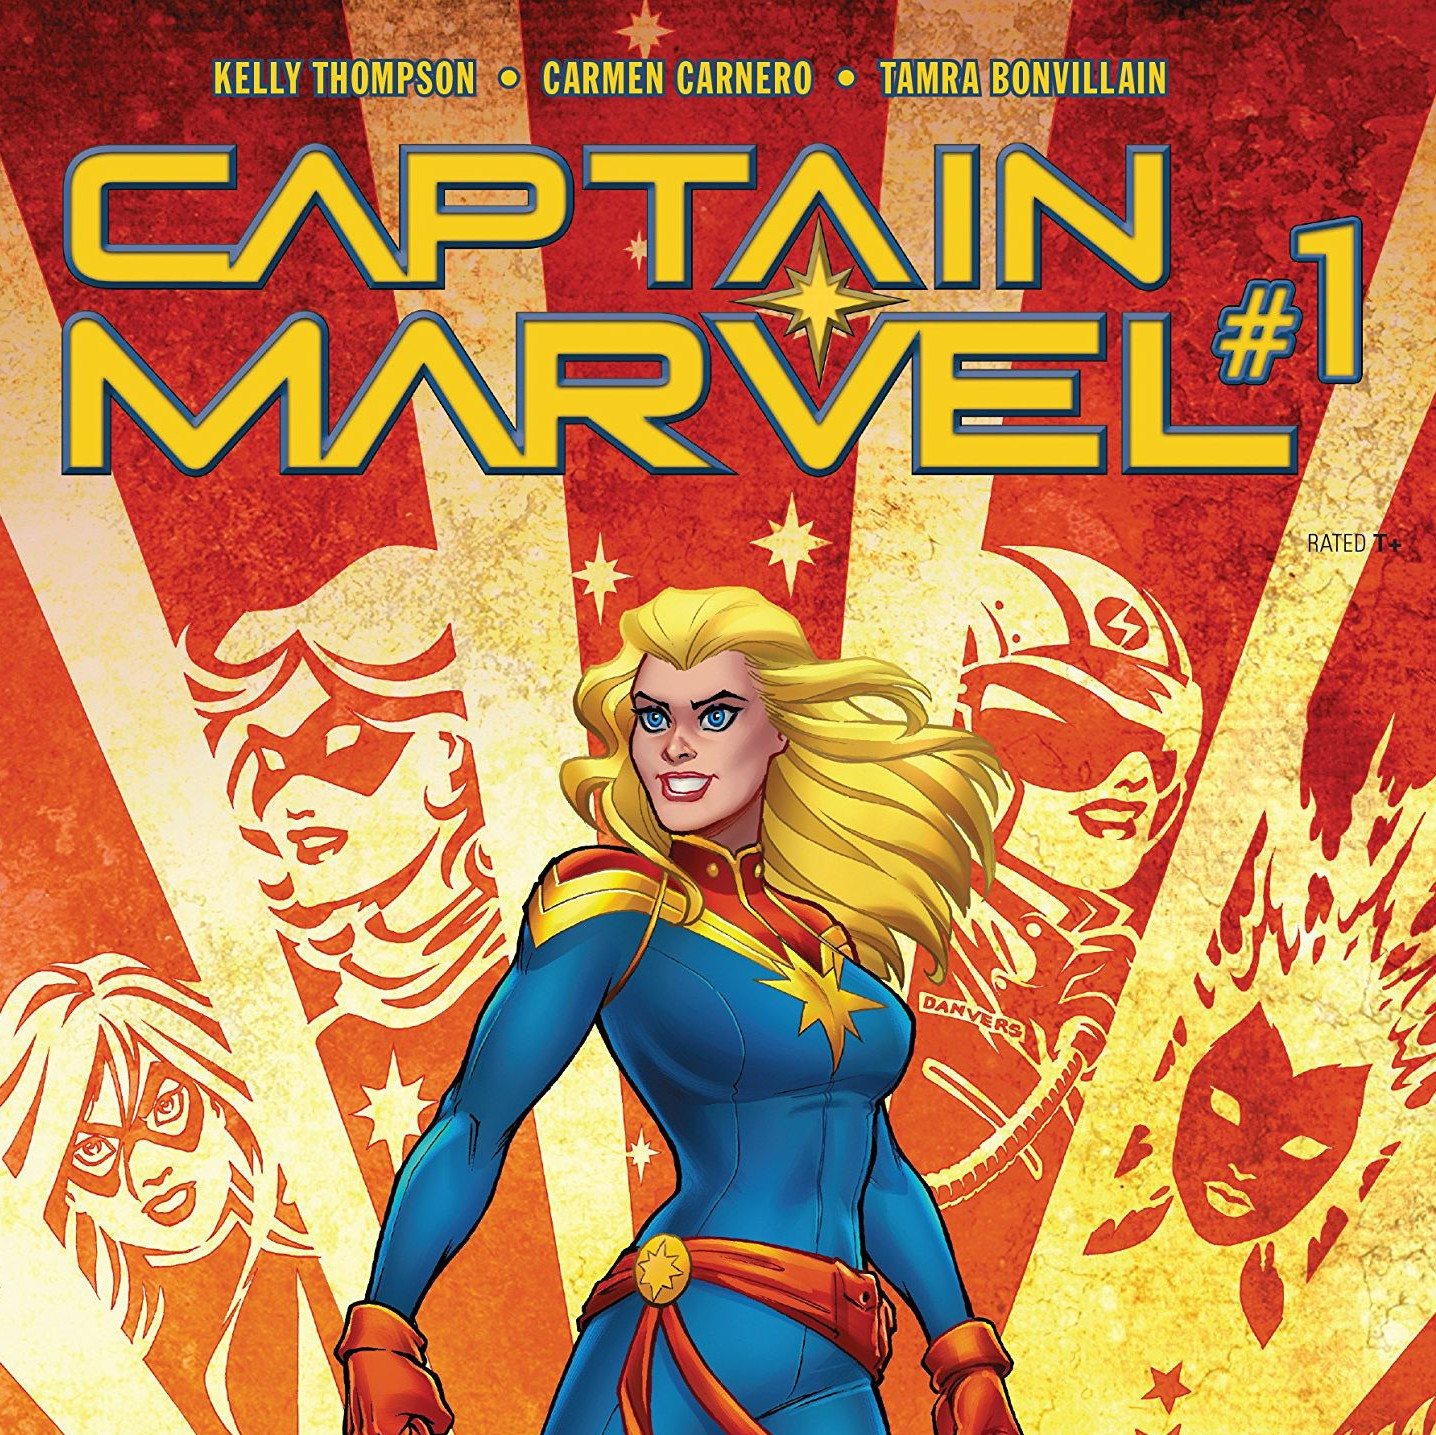 Carol Danvers is back baby 😊